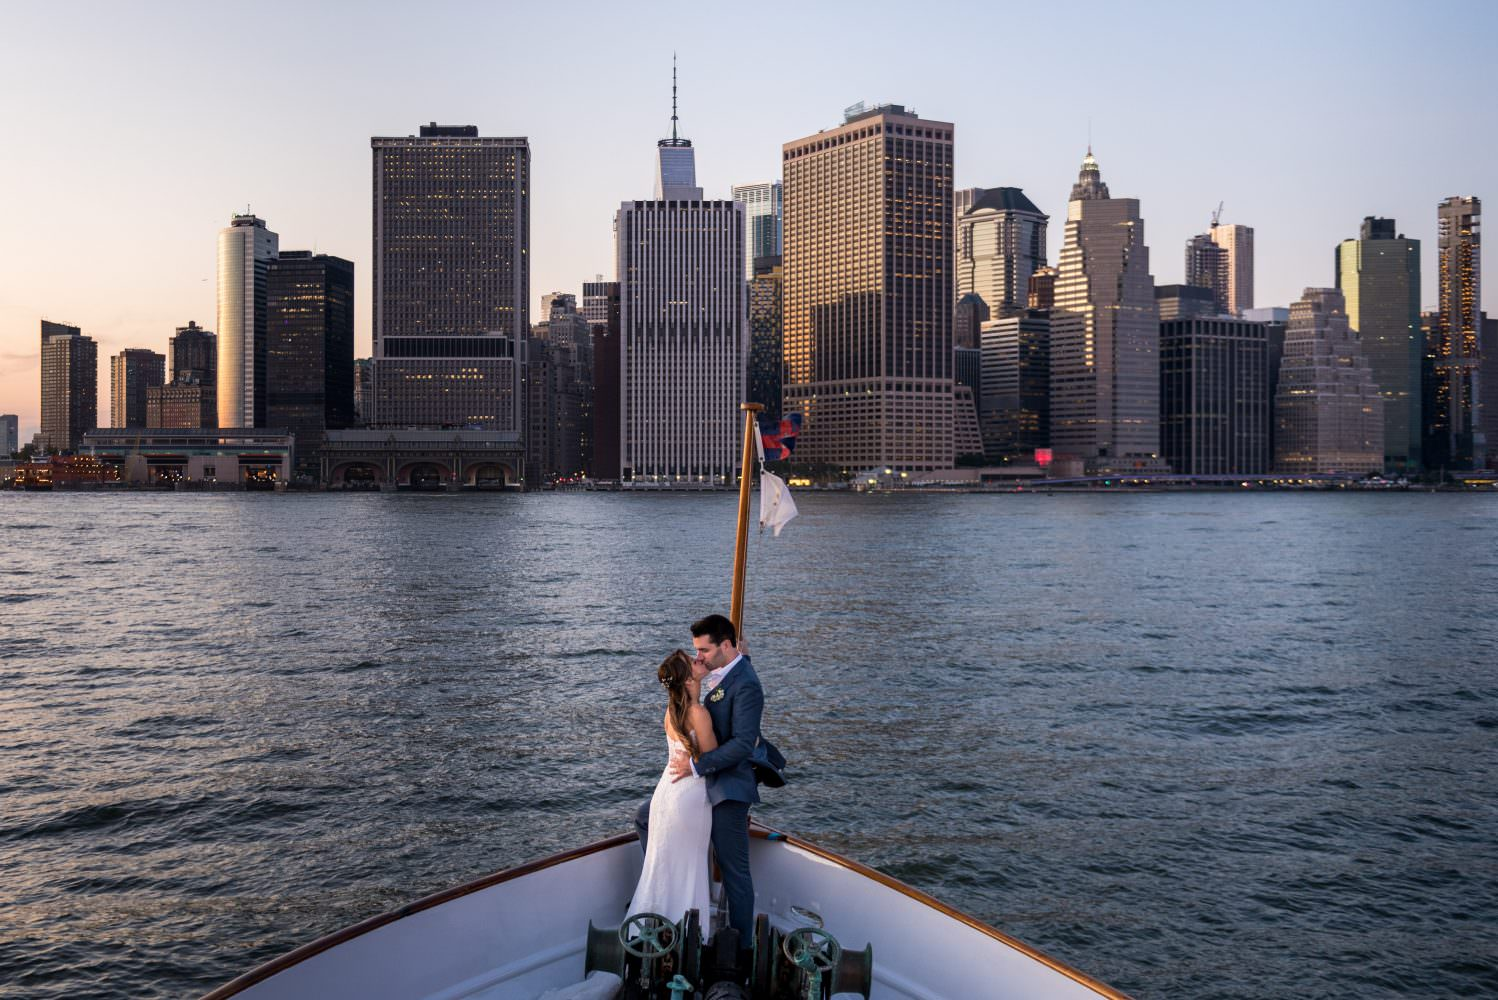 A couple kissing by a body of water with a city in the background